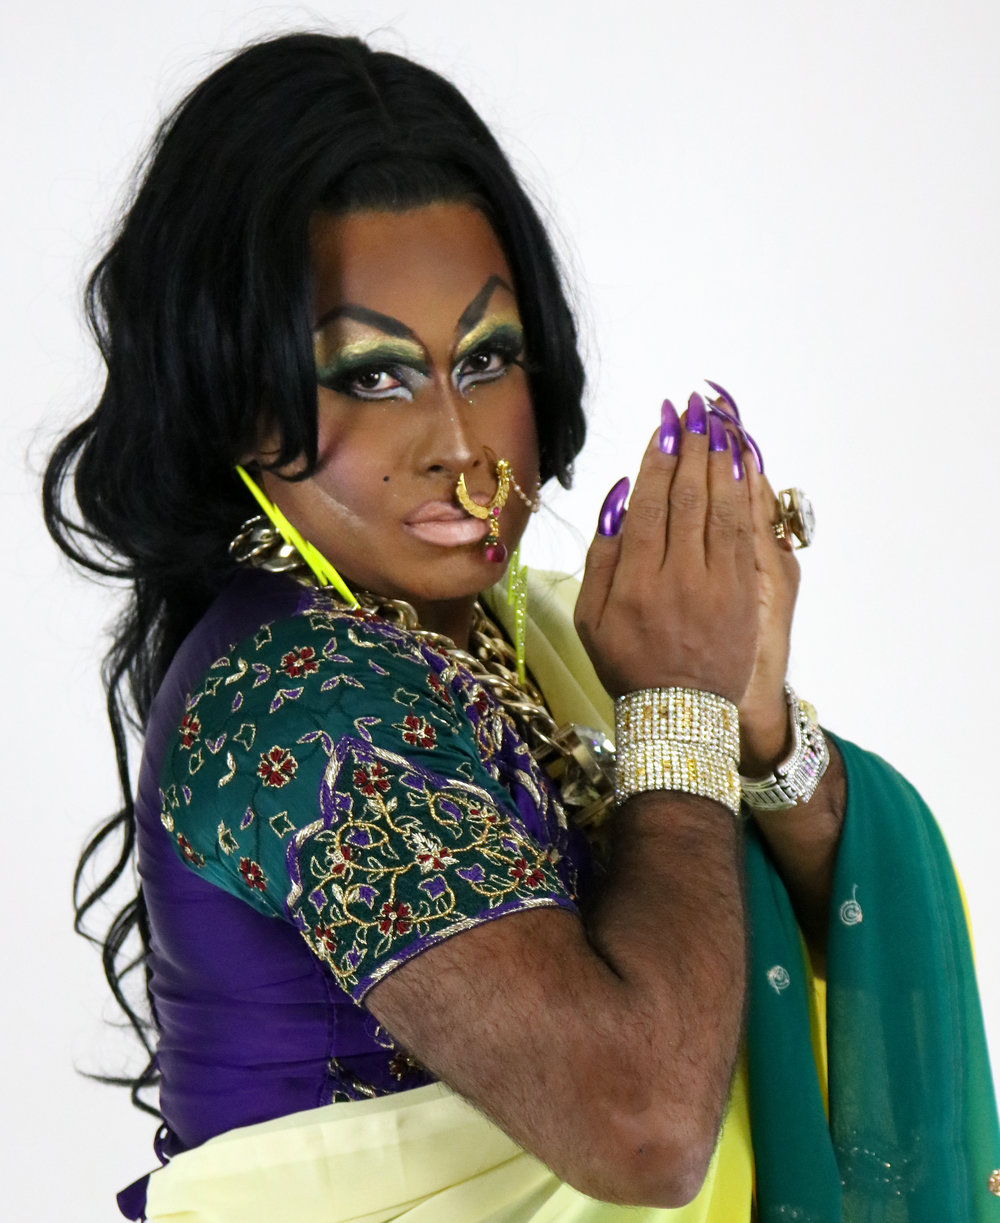 Lawhore Vagistan - is everyone's favorite desi drag auntie. She has performed at the Austin International Drag Festival, Queens Museum, Jack Theater, and Bronx Academy of Arts and Dance. Her films have been screened at the Mississauga South Asian Film Festival, Austin OUTsider multi-arts festival, Hyderabad Queer Film Festival, and San Francisco 3rd i film festival.